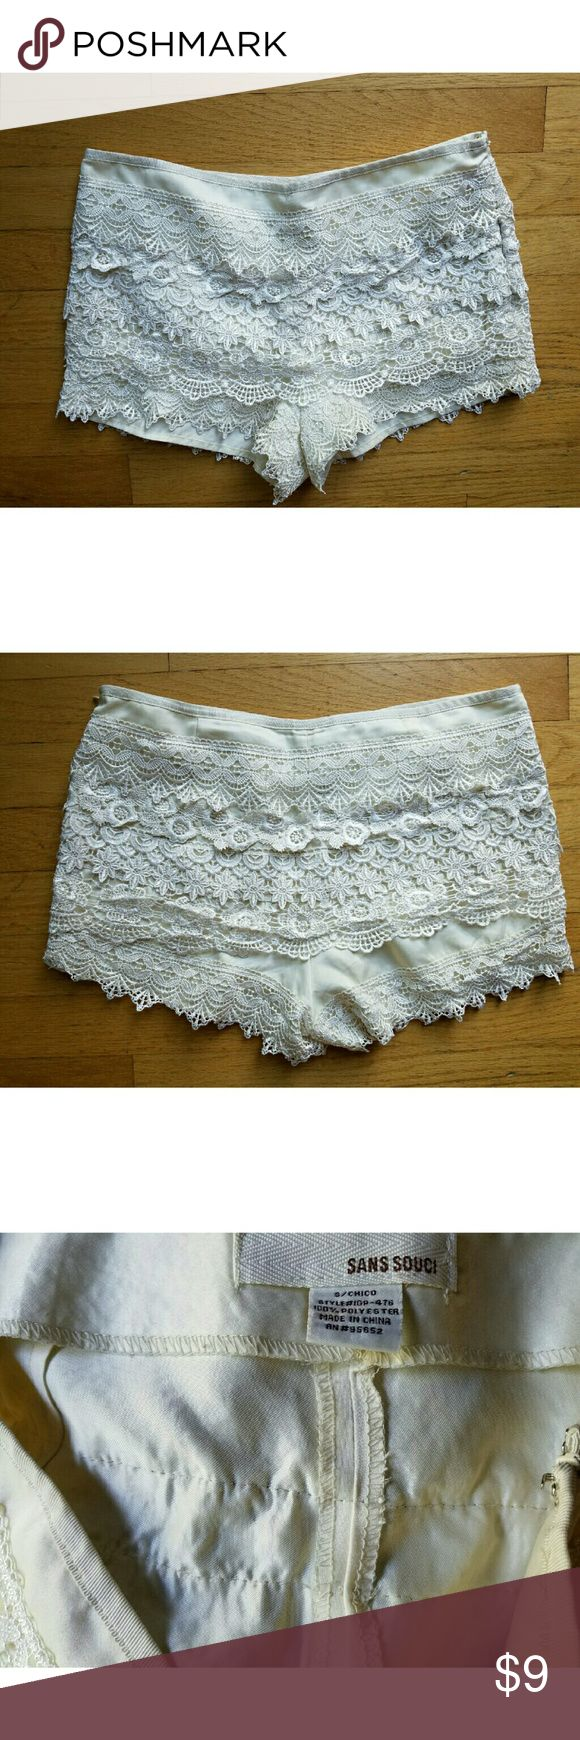 Dressy Sans Souci Ivory Lace Shorts Small Dress up your game with this preowned pair of Dressy Sans Souci Ivory Lace Shorts womens small. Polyester lace shell fully lined with a poly short. Concealed side zipper. In very good condition! Sans Souci Shorts